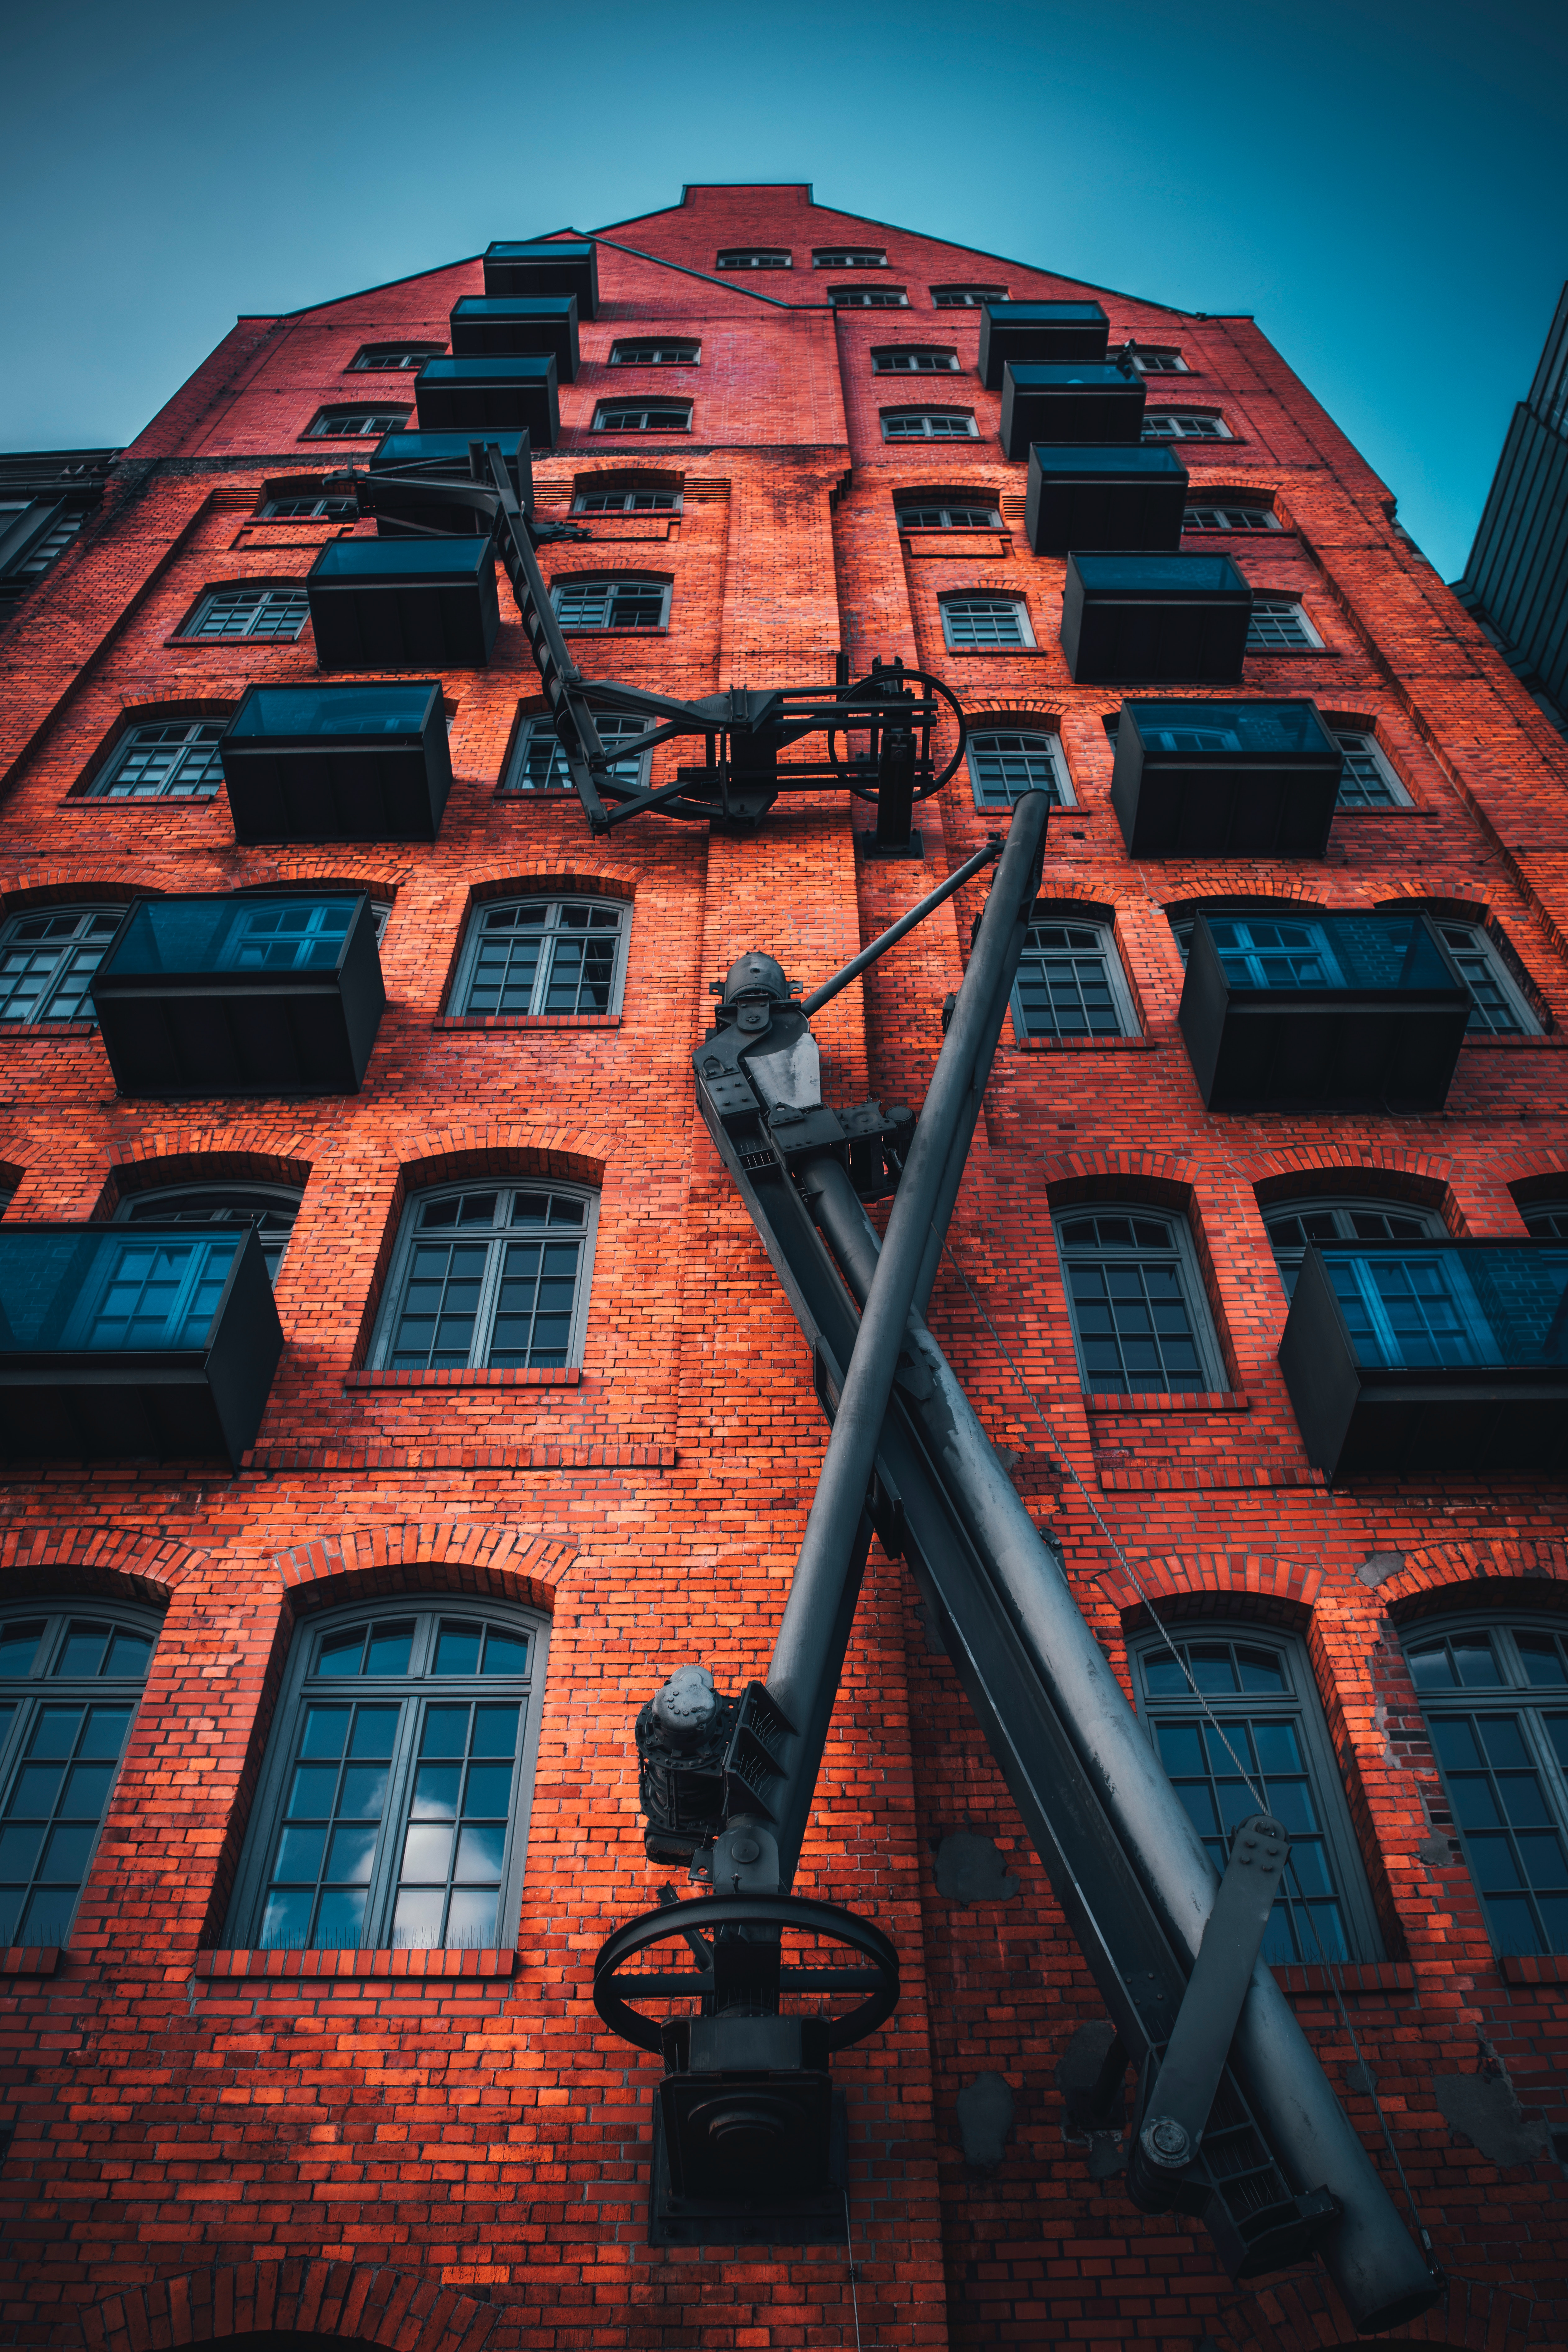 88120 Screensavers and Wallpapers Windows for phone. Download Cities, Windows, Architecture, Building, Facade, Balconies, Brick pictures for free